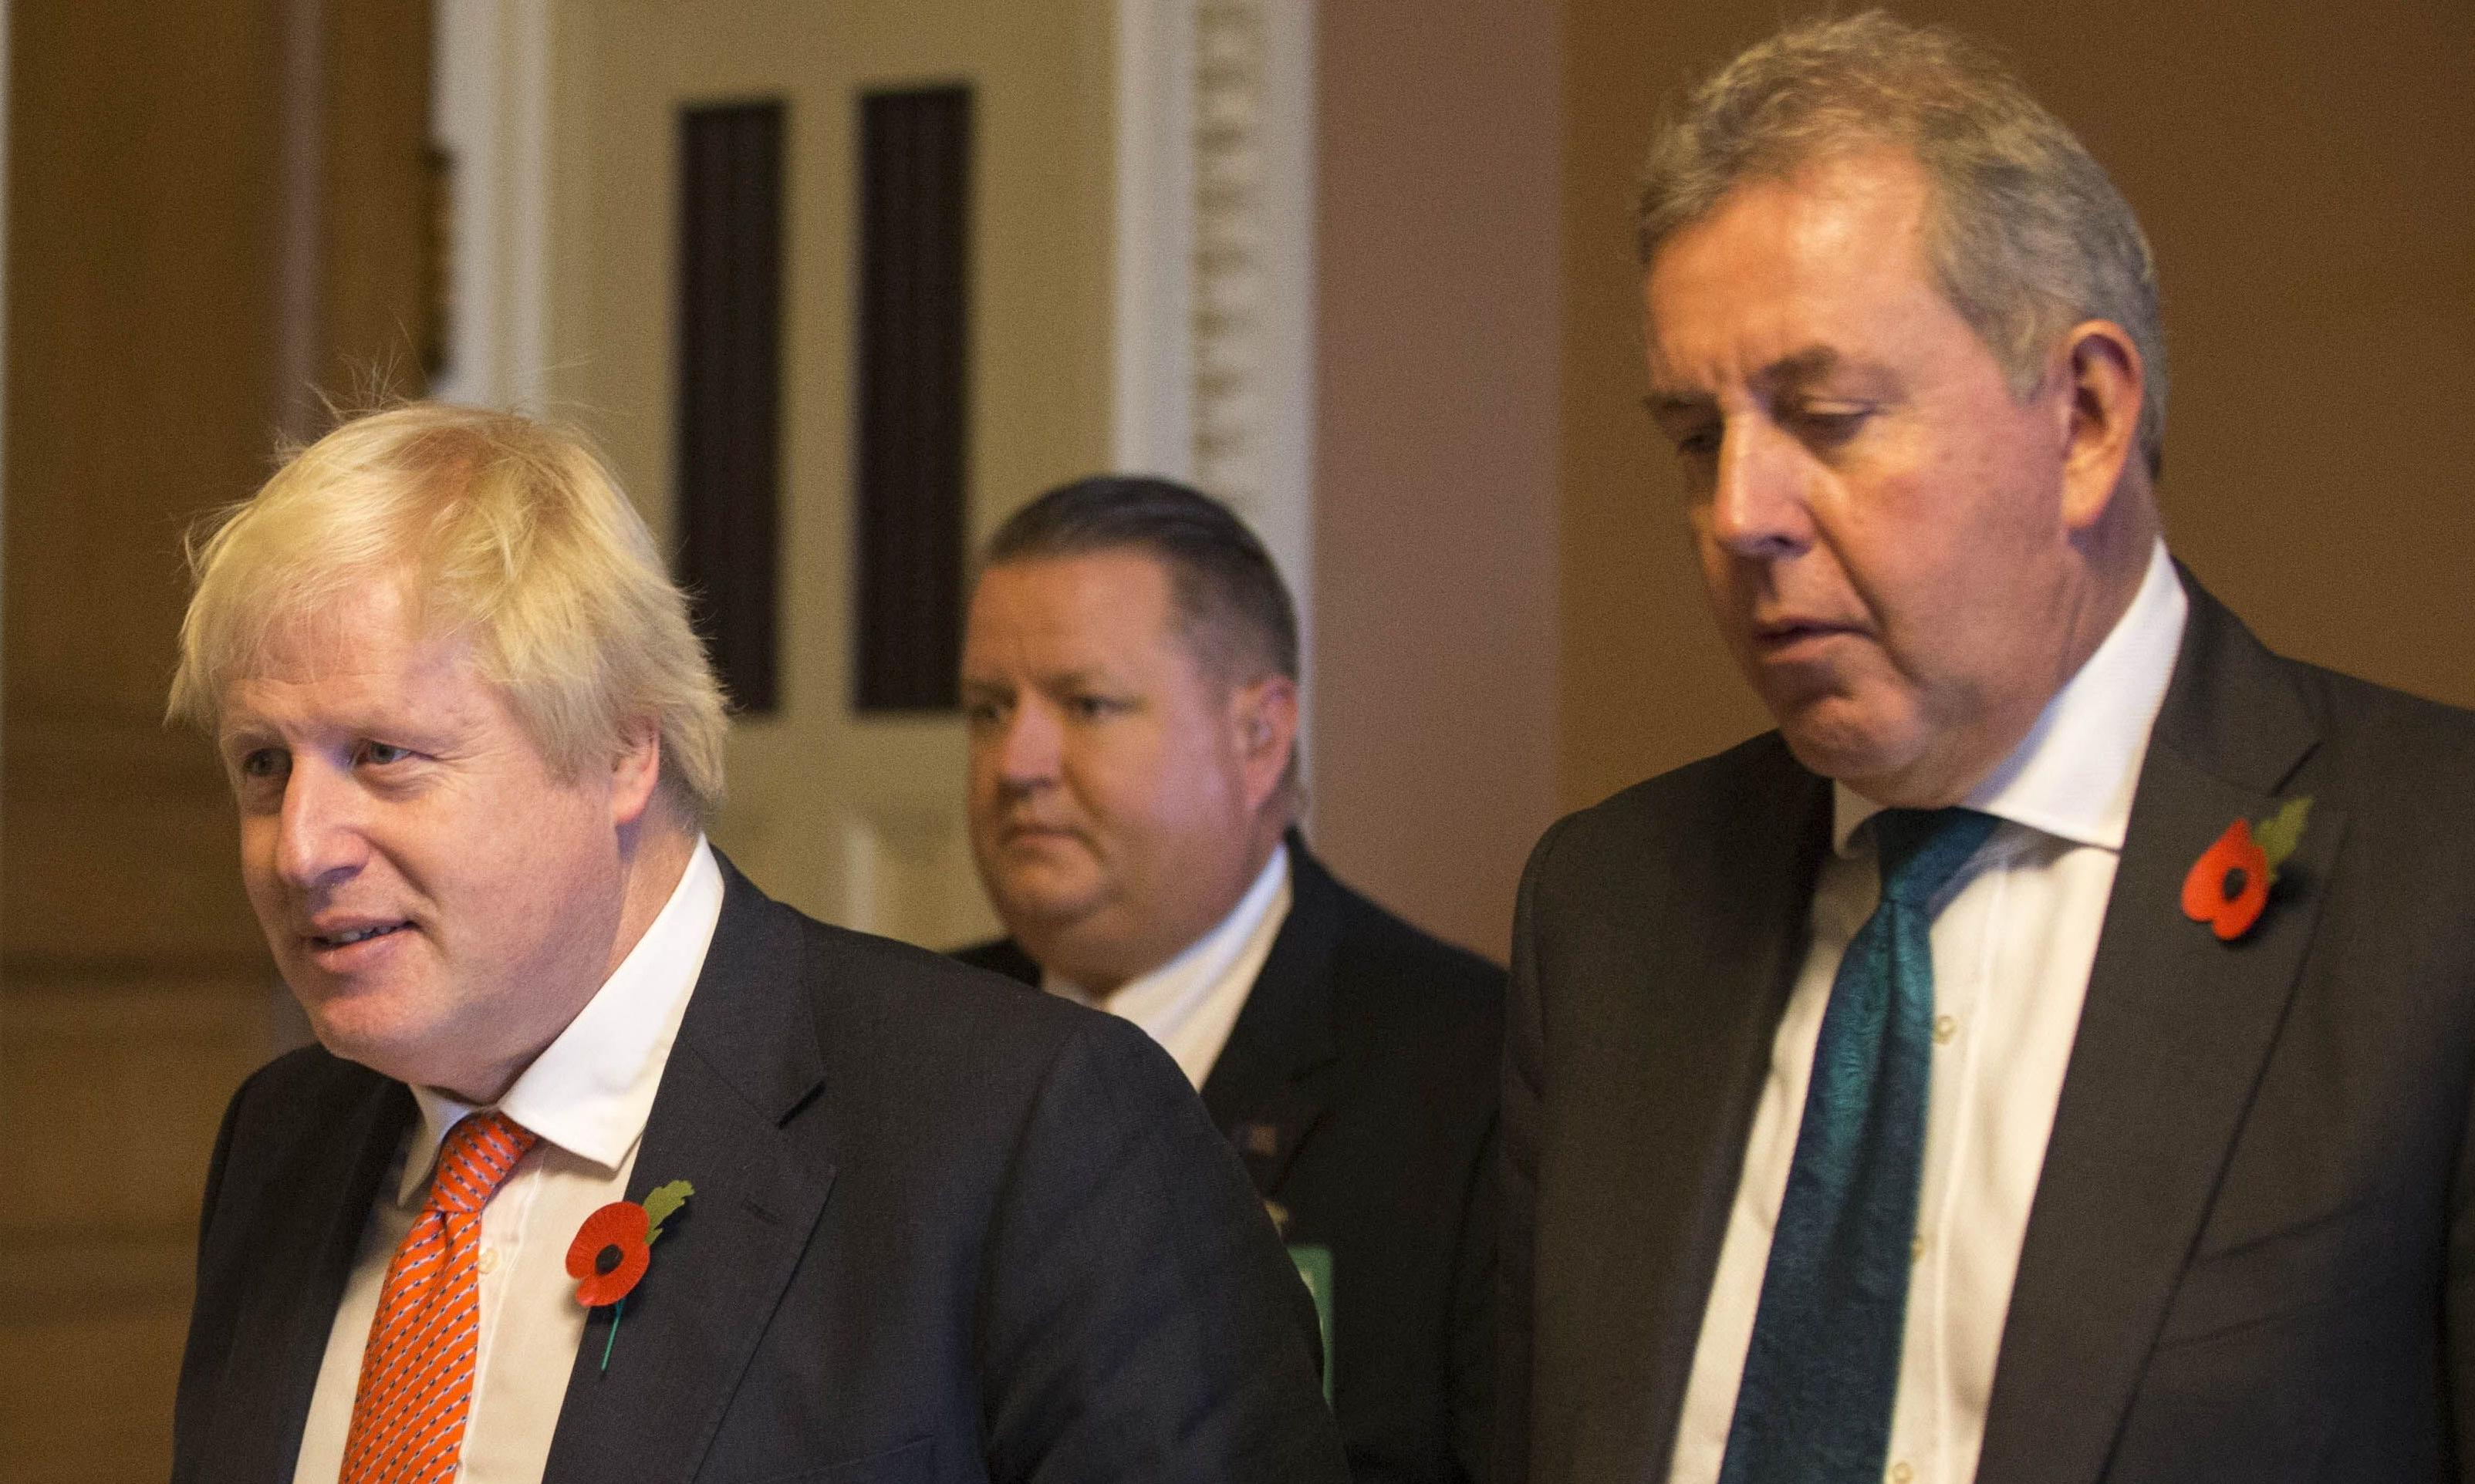 Kim Darroch: effectively sacked by Johnson on the orders of Trump